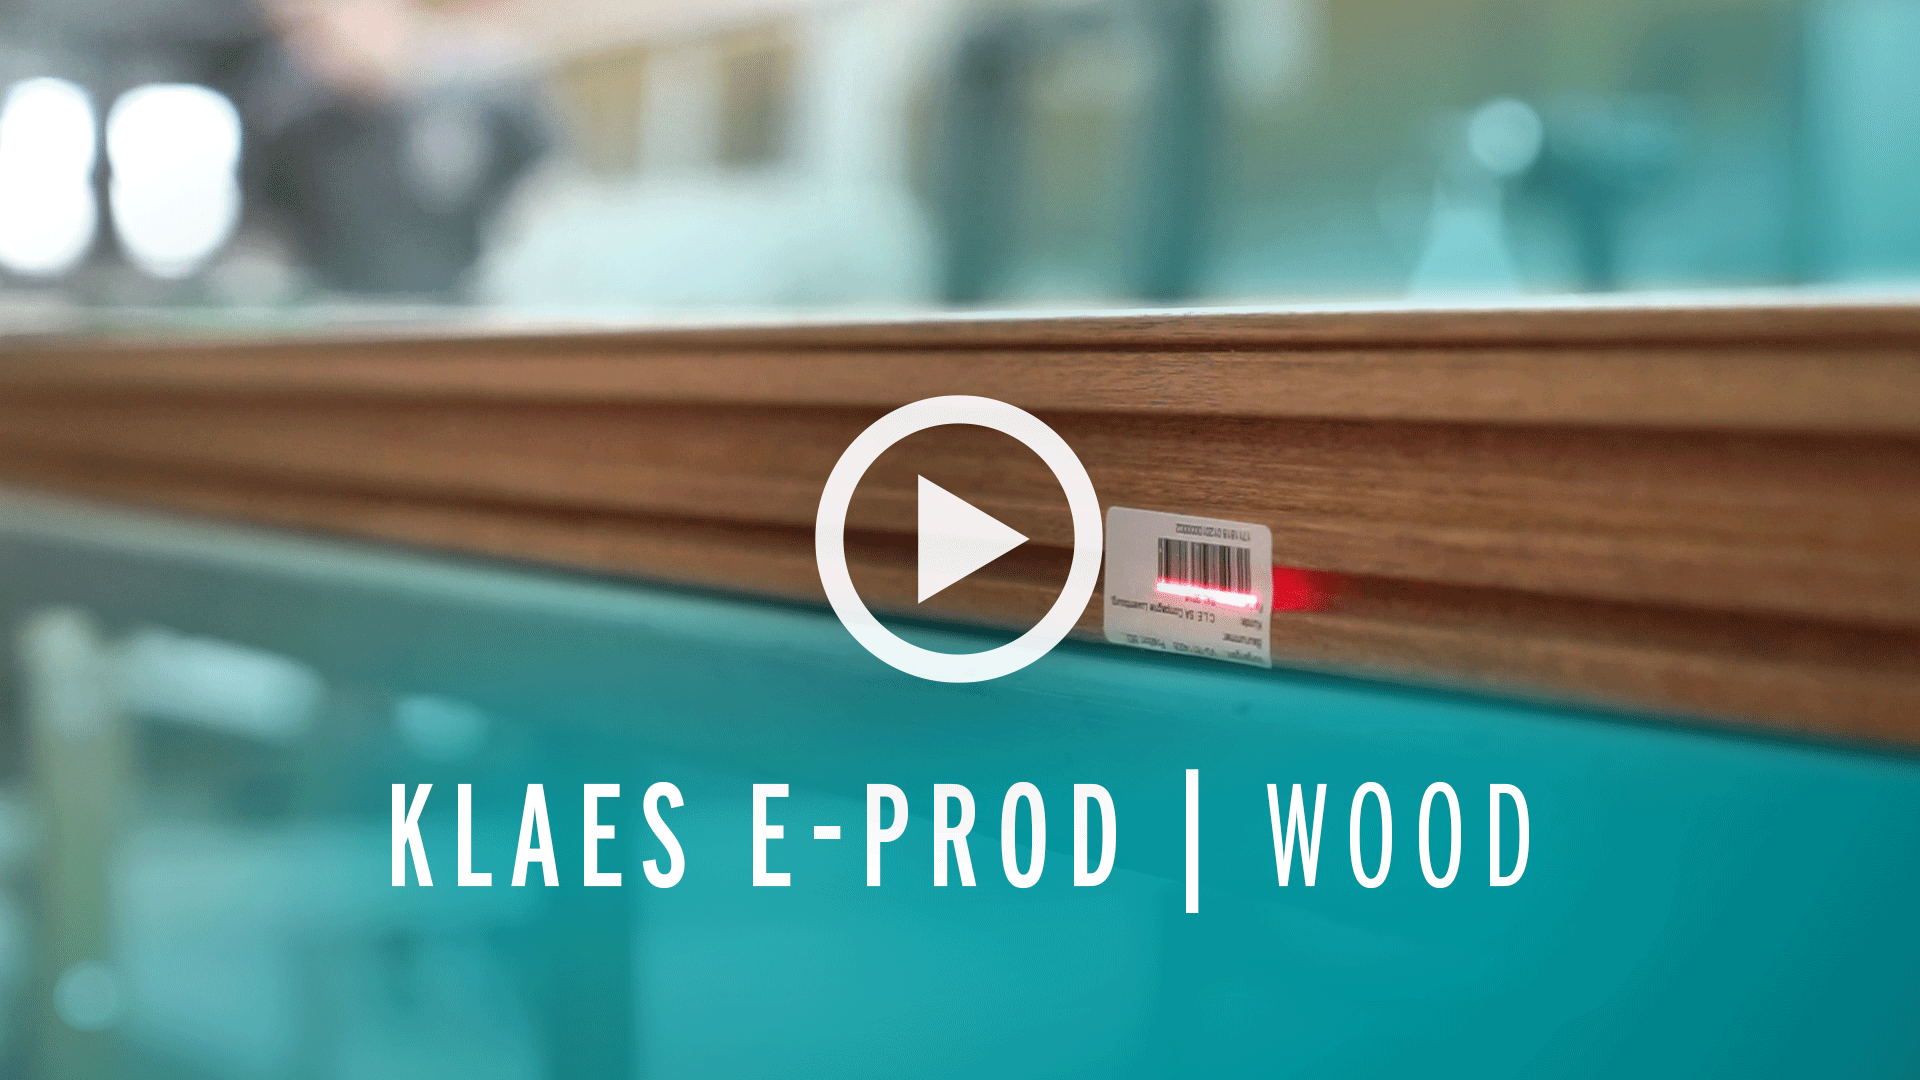 Klaes e-prod - Electronical Production in Window Construction Companies (Wood)